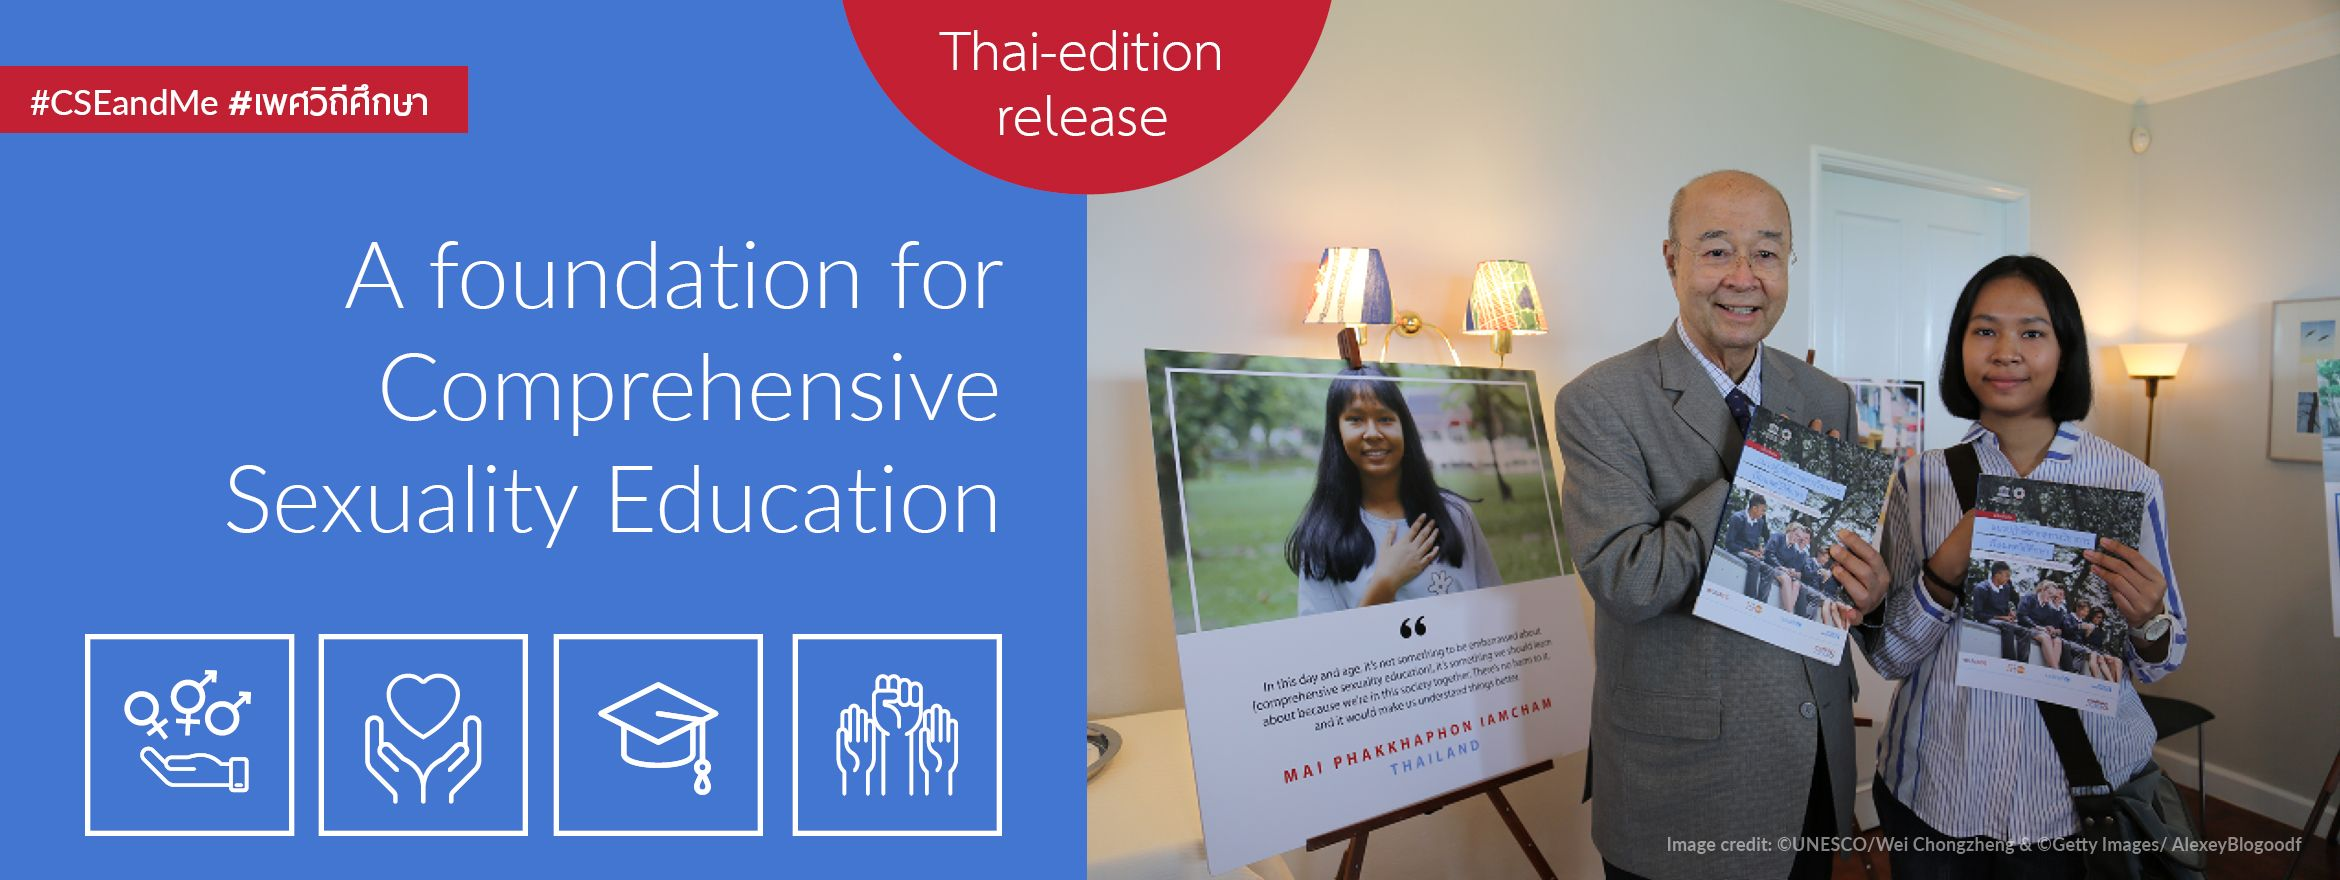 Let's talk about sex: Thai-language sexuality education guidance launched